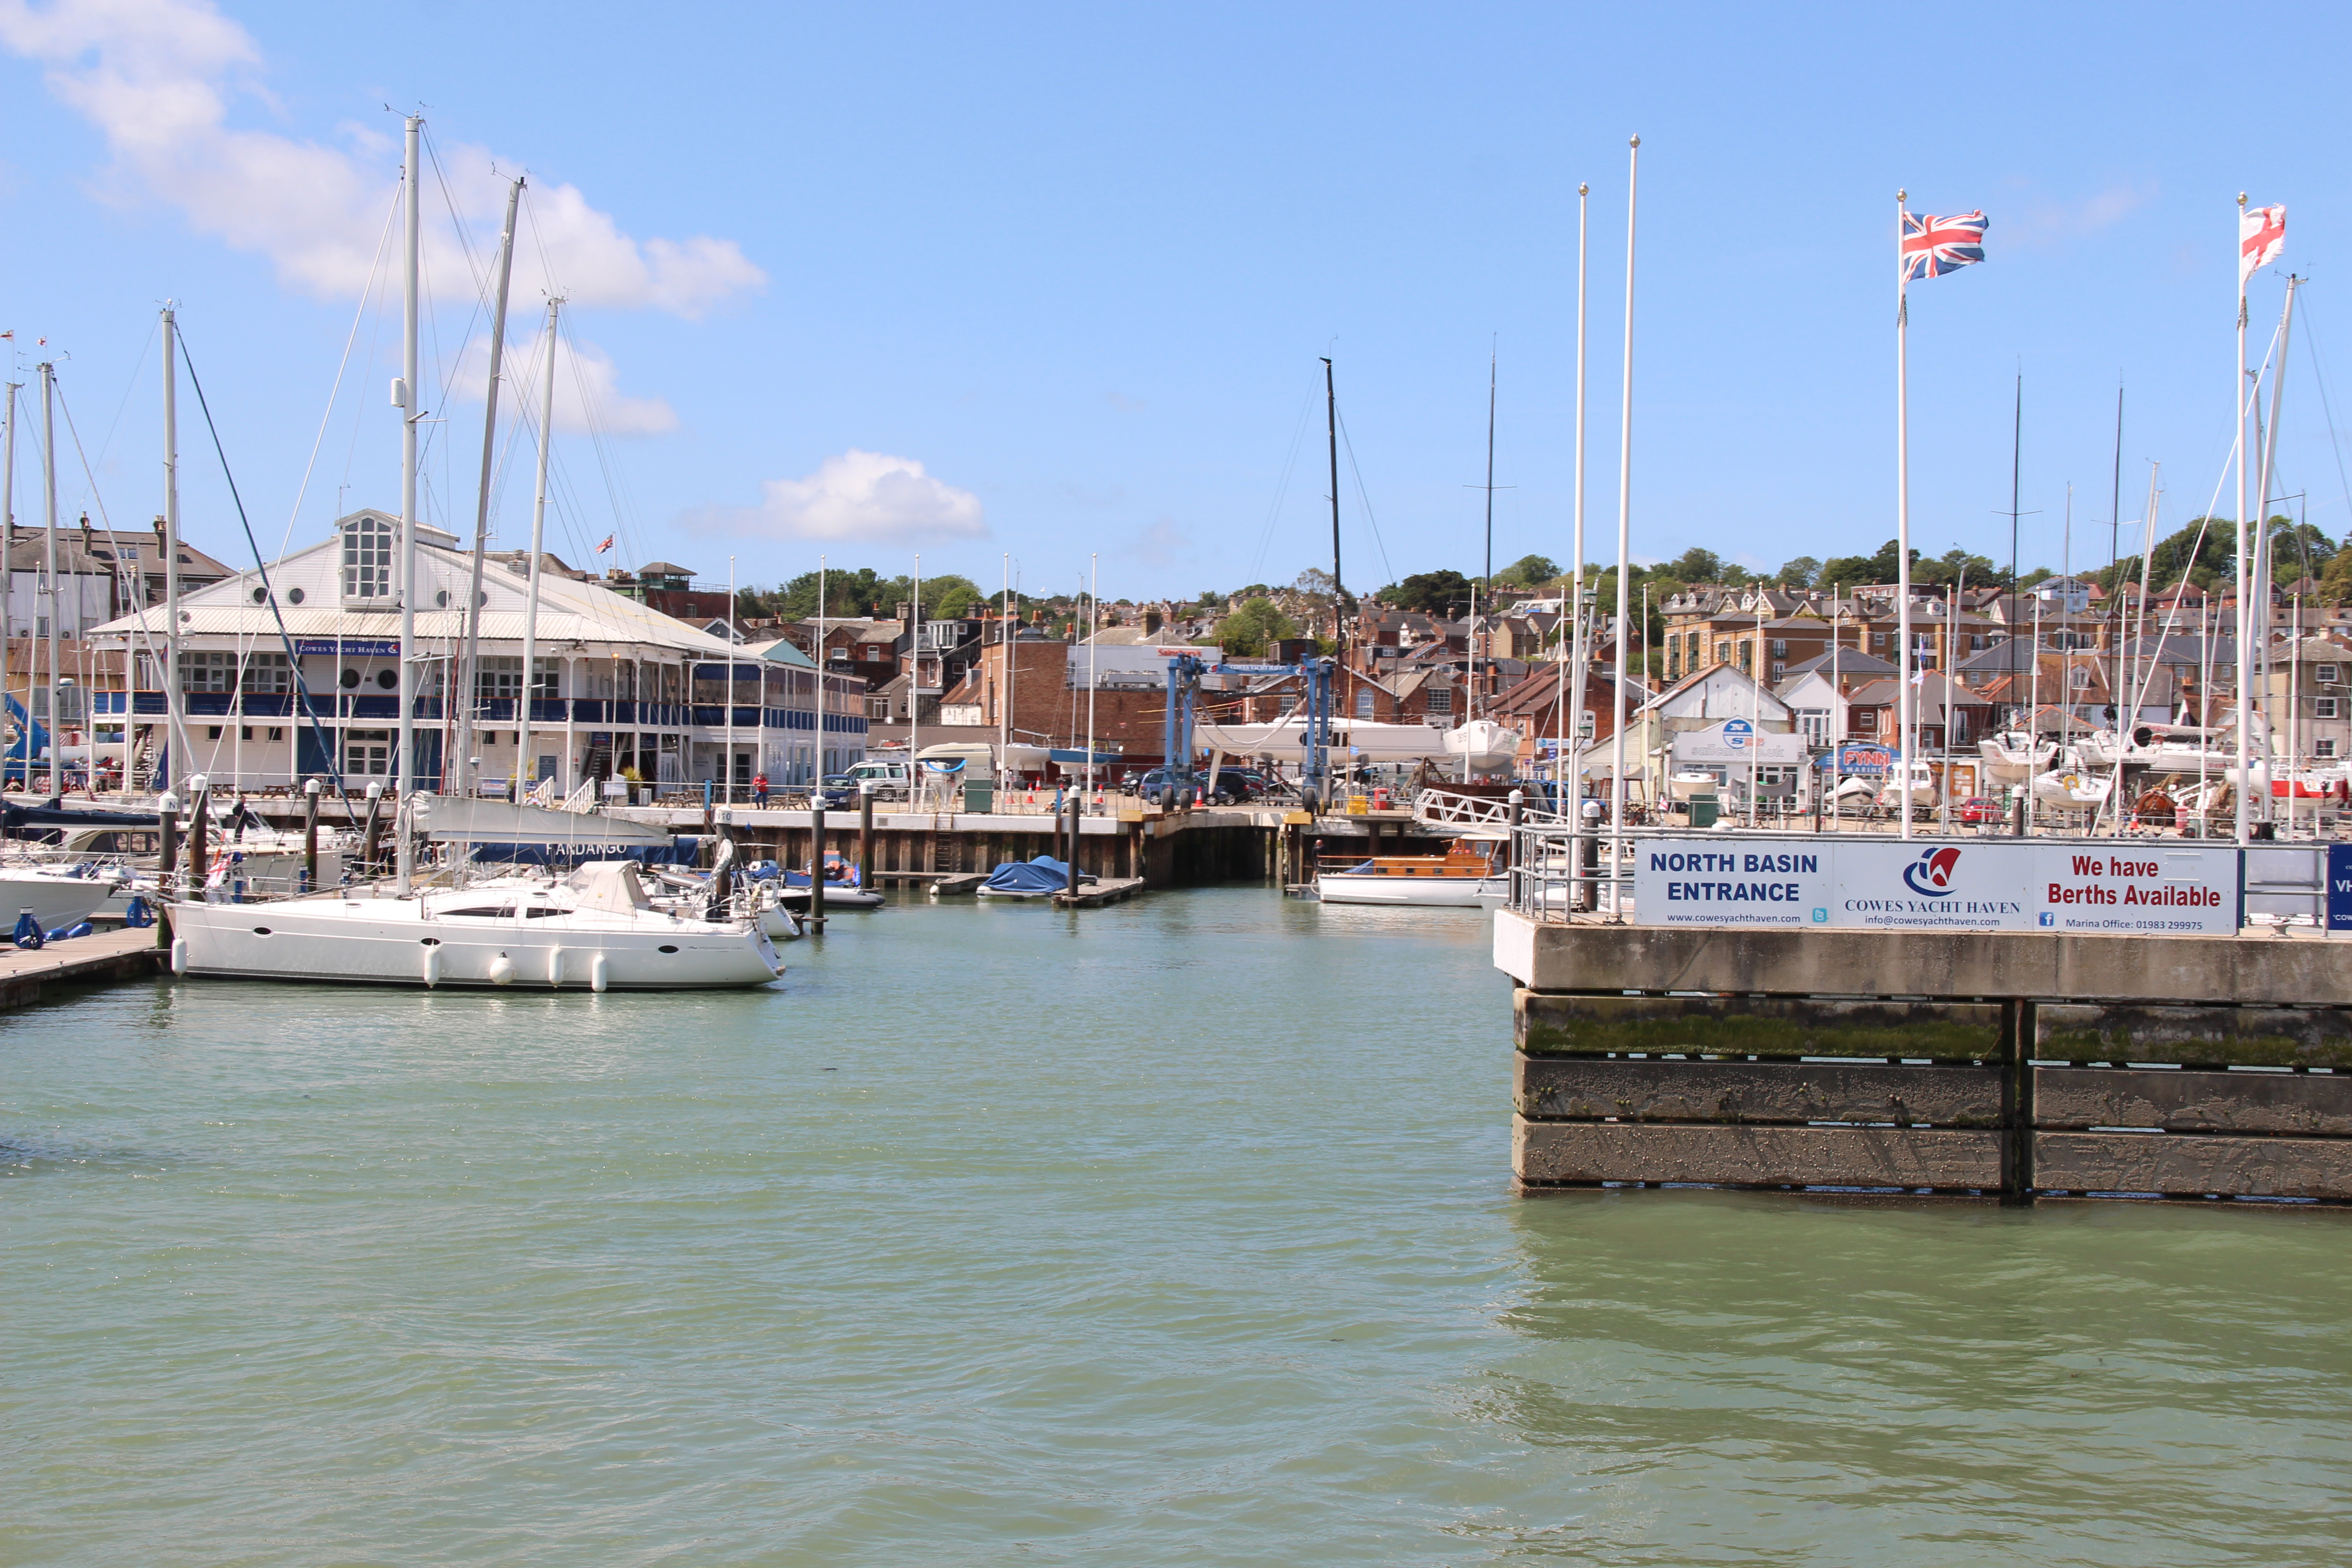 Sailing to Cowes